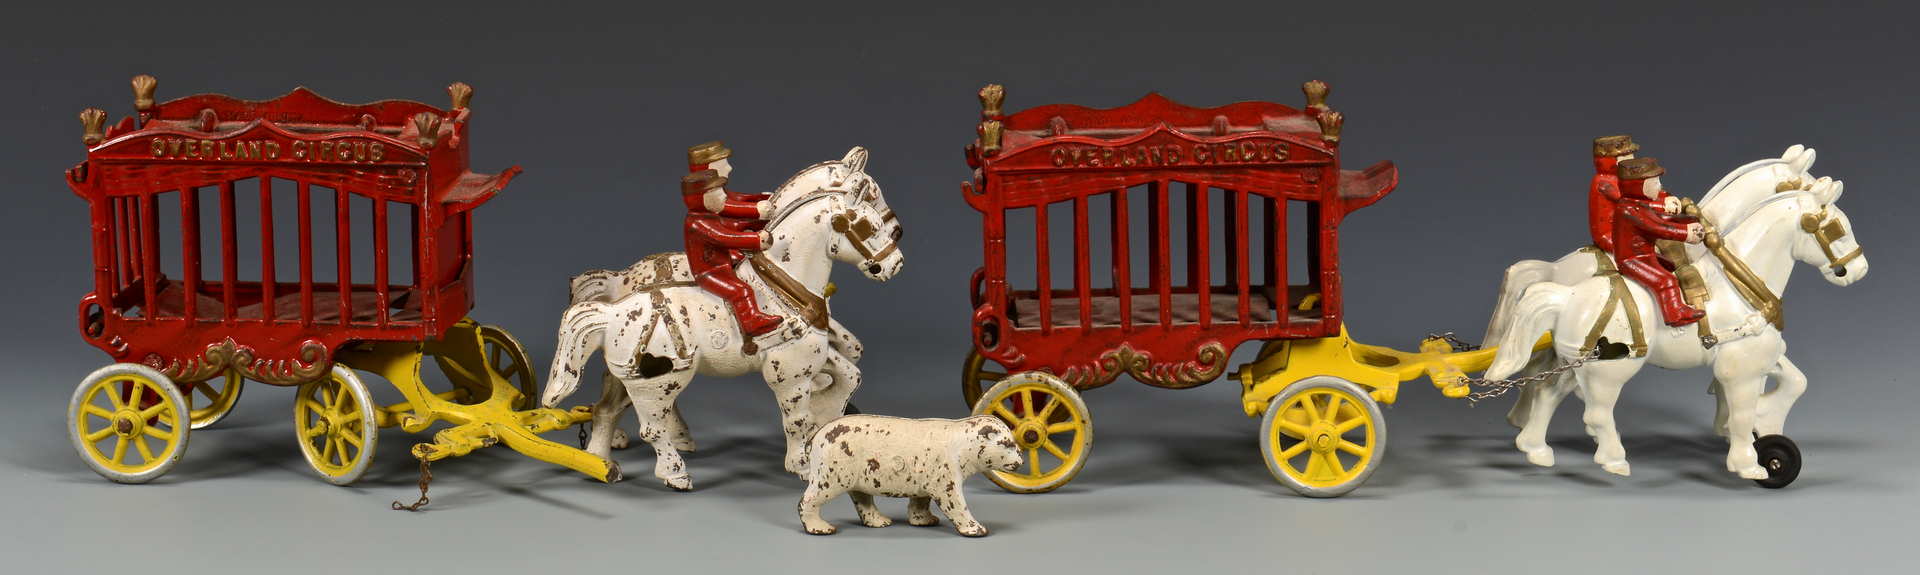 Lot 460: 3 Kenton Overland Wagon, Circus & Band